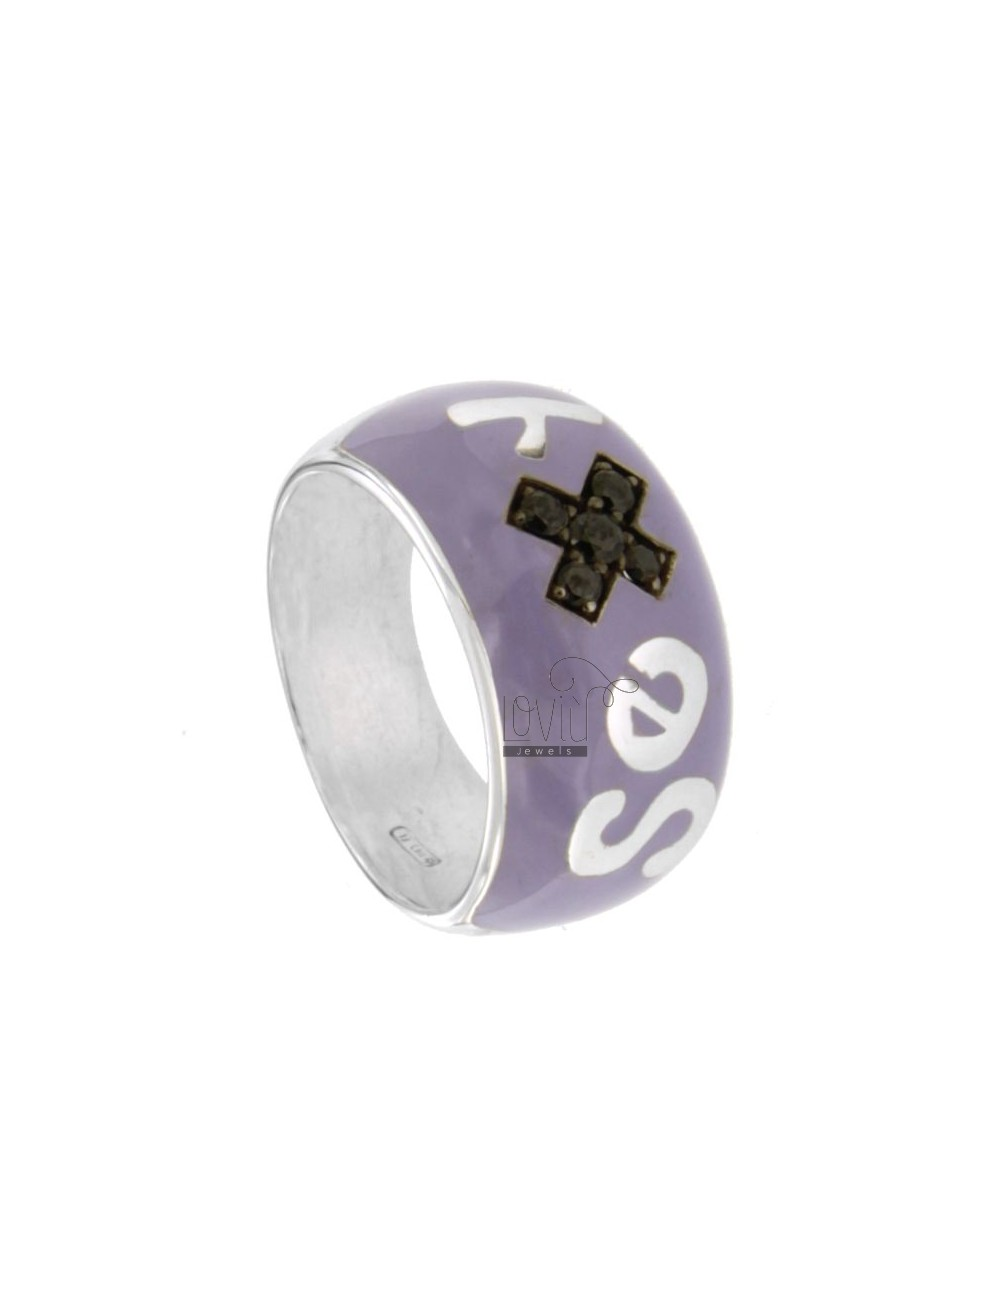 SEX IN BAND RING RHODIUM AG TIT 925 ENAMEL PURPLE SIZE 18 AND ZIRCONIA ERI